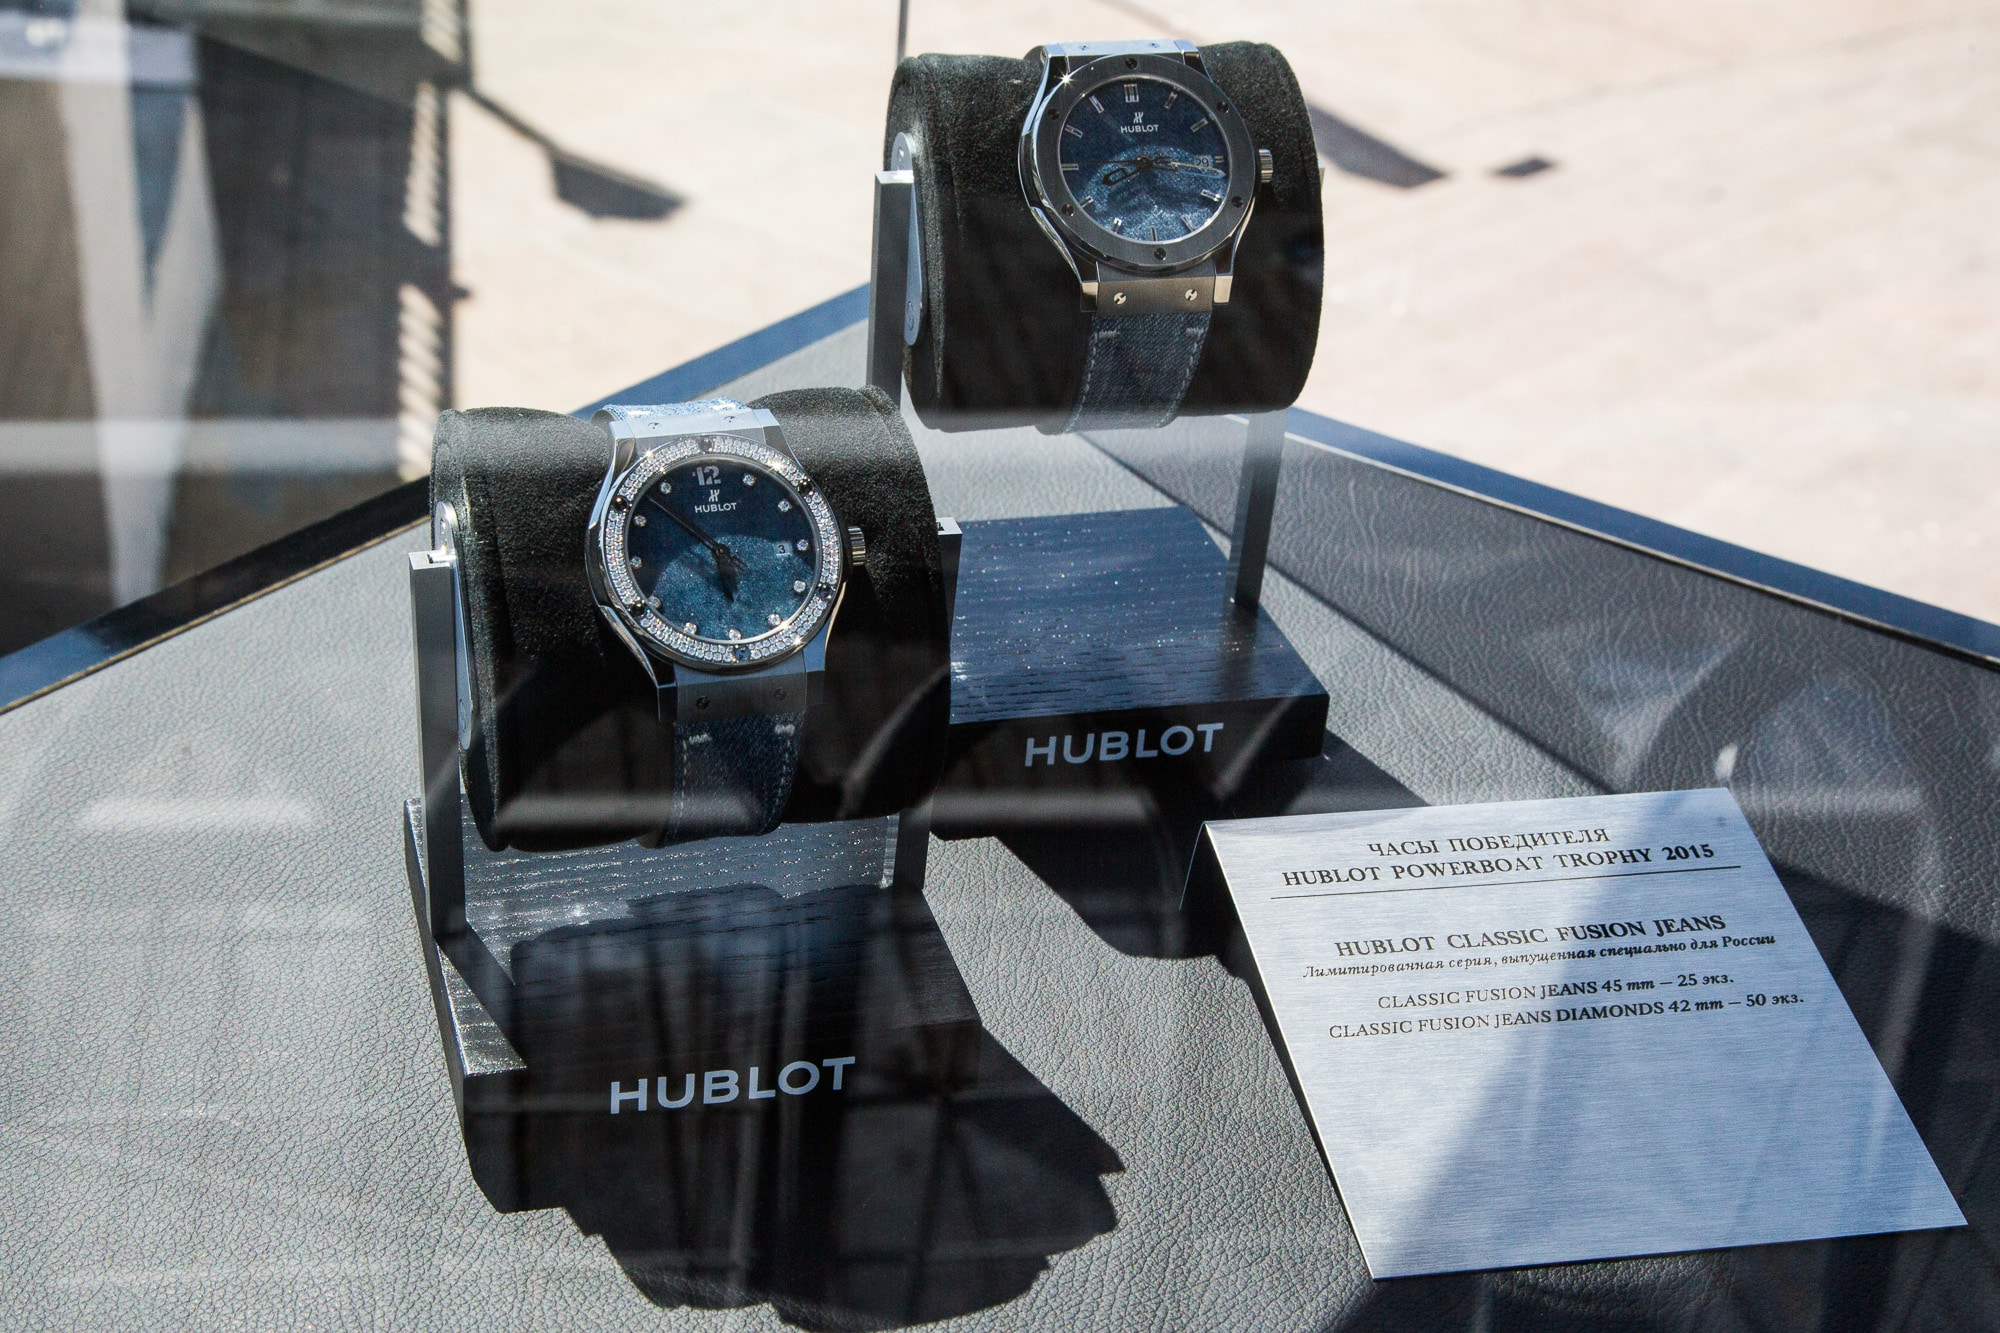 Hublot Classic Fusion Jeans Russia Collection